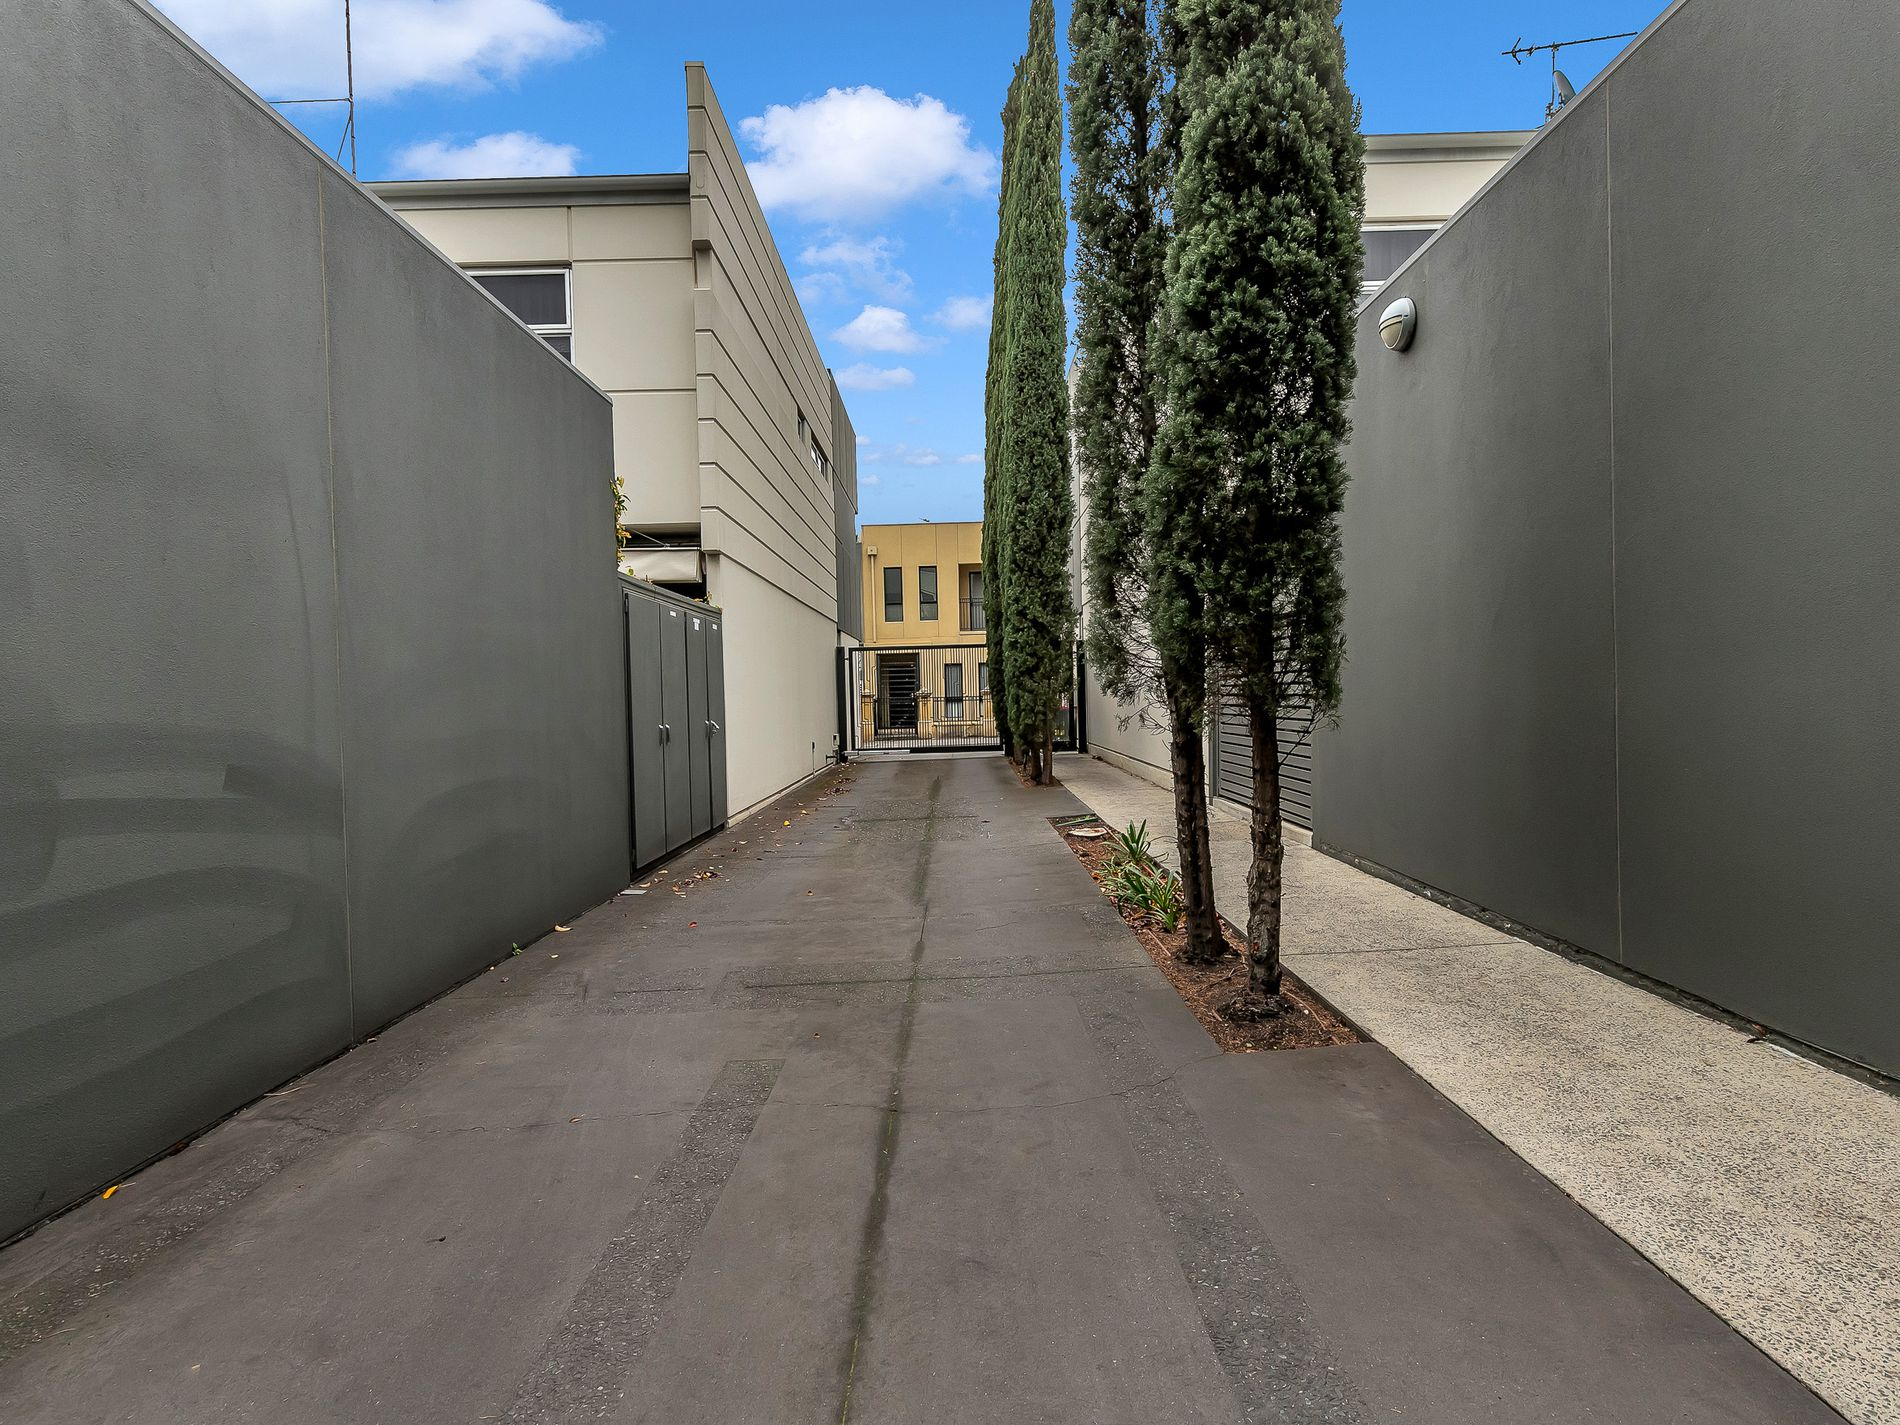 4 / 14 Myers Lane, Adelaide